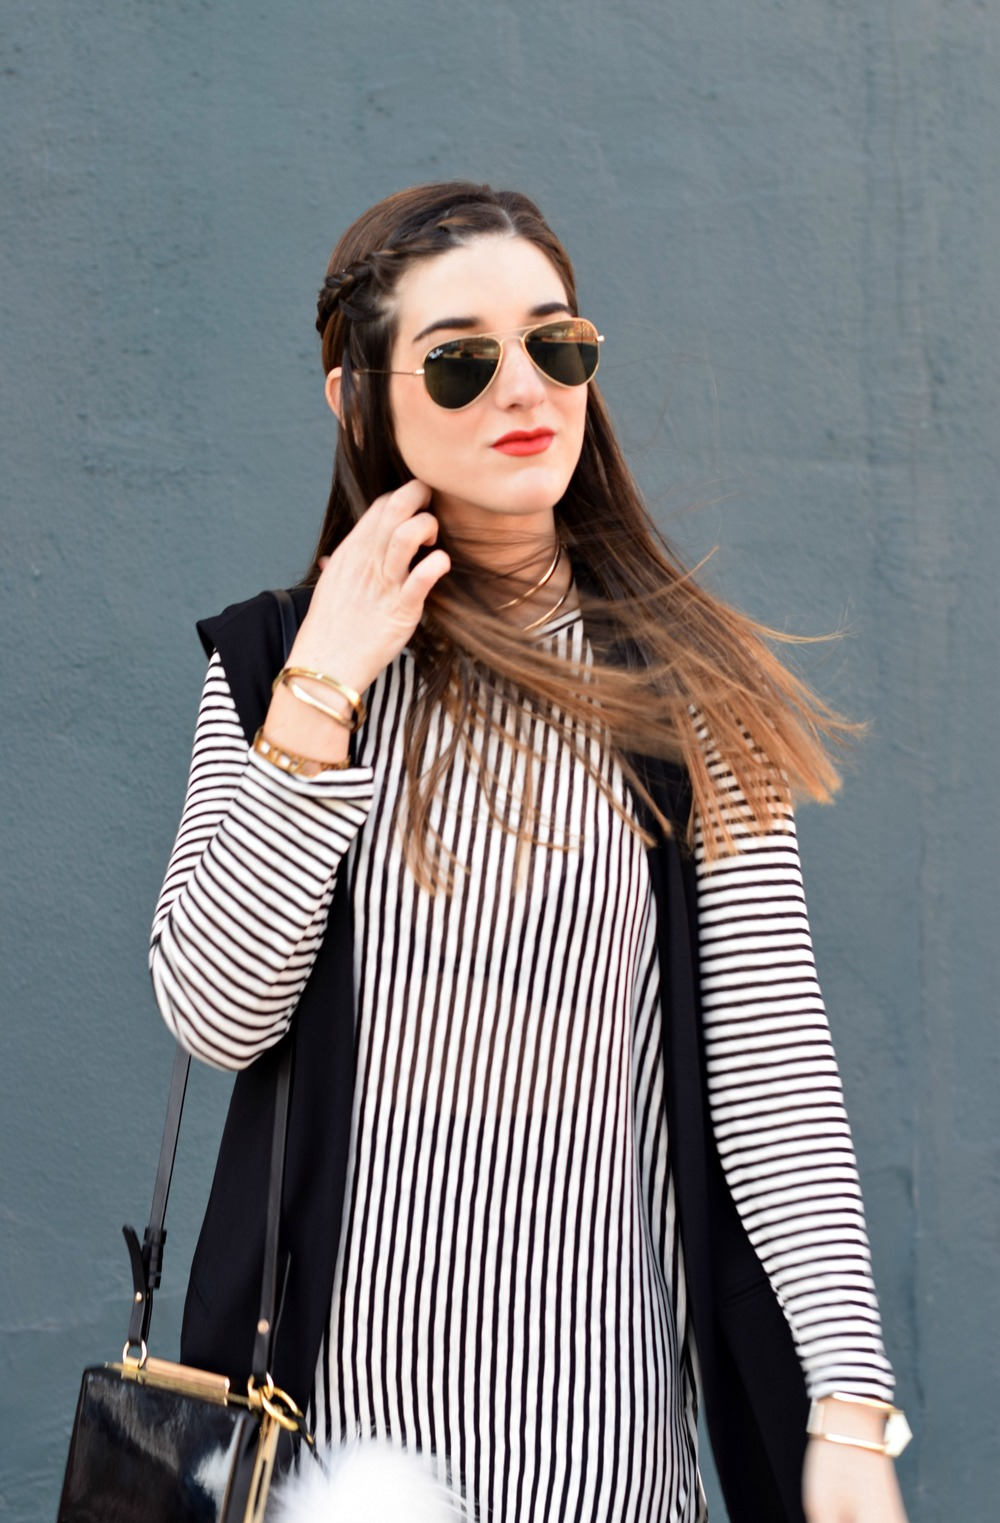 Black and White Striped Shirt Dress Long Vest Louboutins & Love Fashion Blog Esther Santer NYC Street Style Blogger RayBan Aviator Sunglasses OOTD Outfit Inspo Inspiration Girl Women Gold Jewelry Bracelets Choker Pom Pom Bag Ombre Zara Tights Heels .jpg